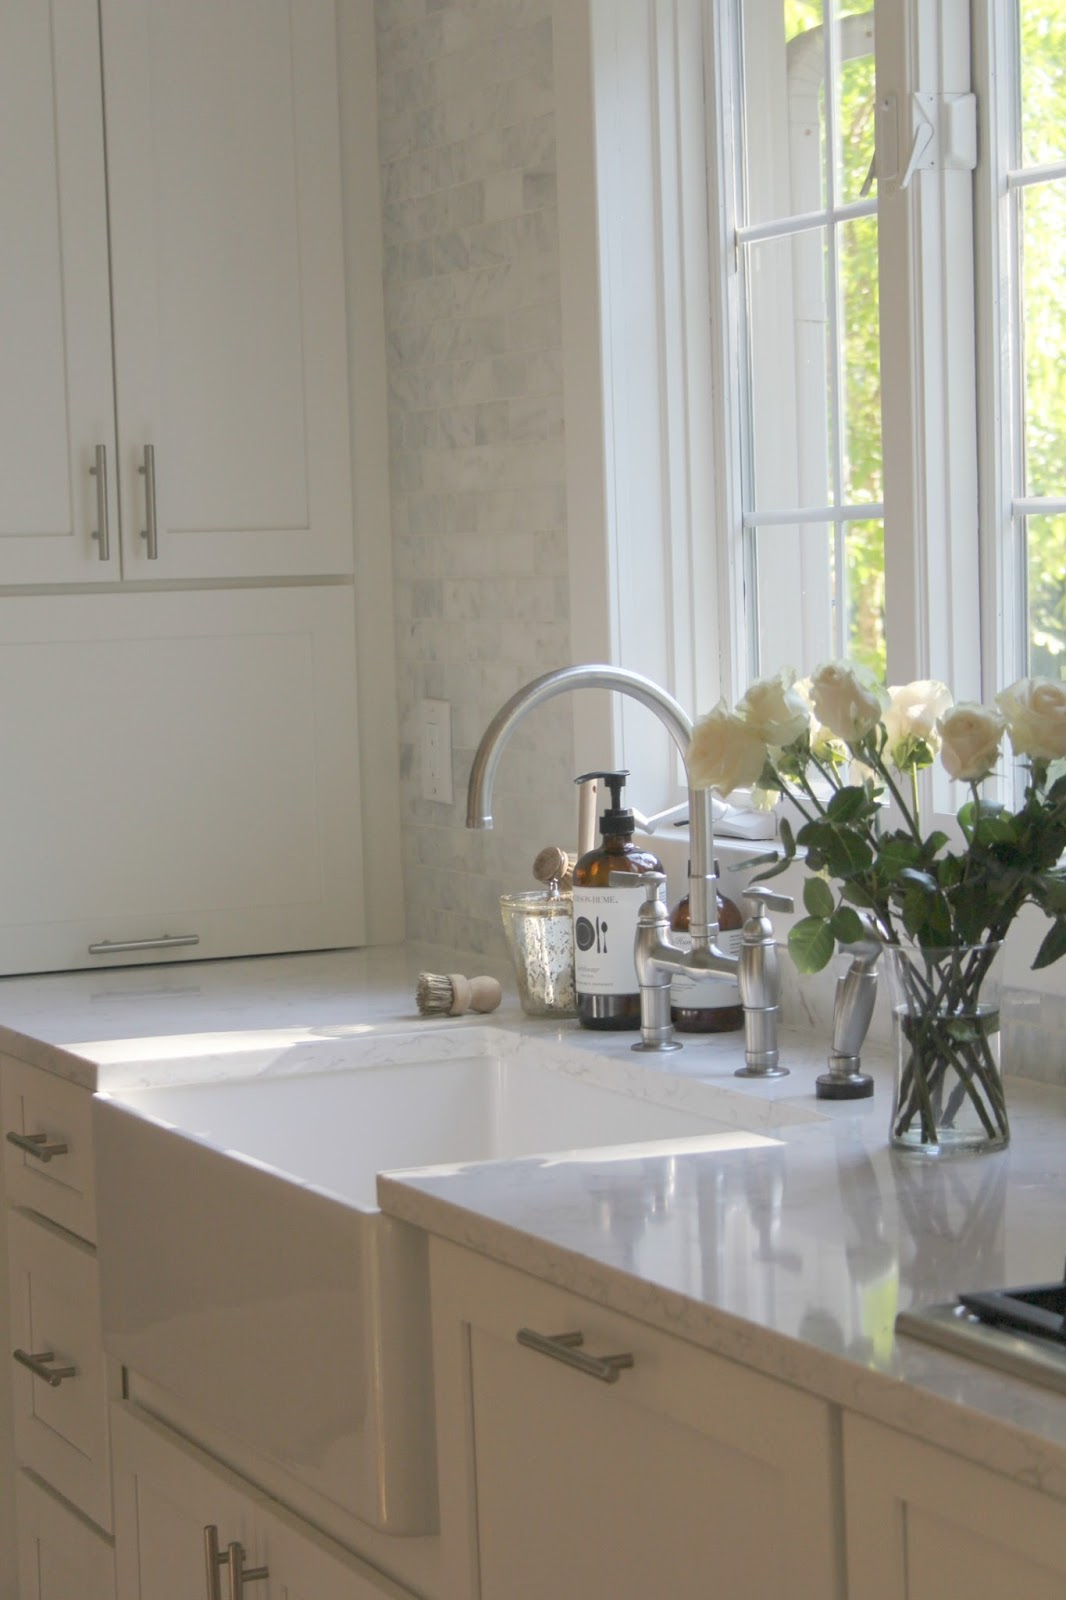 Modern farmhouse kitchen with white Shaker cabinets, farm sink, marble subway tiles, and white quartz counters. #farmsink #modernfarmhouse #kitchendecor #kitchendesign #whitekitchen #HelloLovelyStudio #minuet #quartz #serene #whitedecor